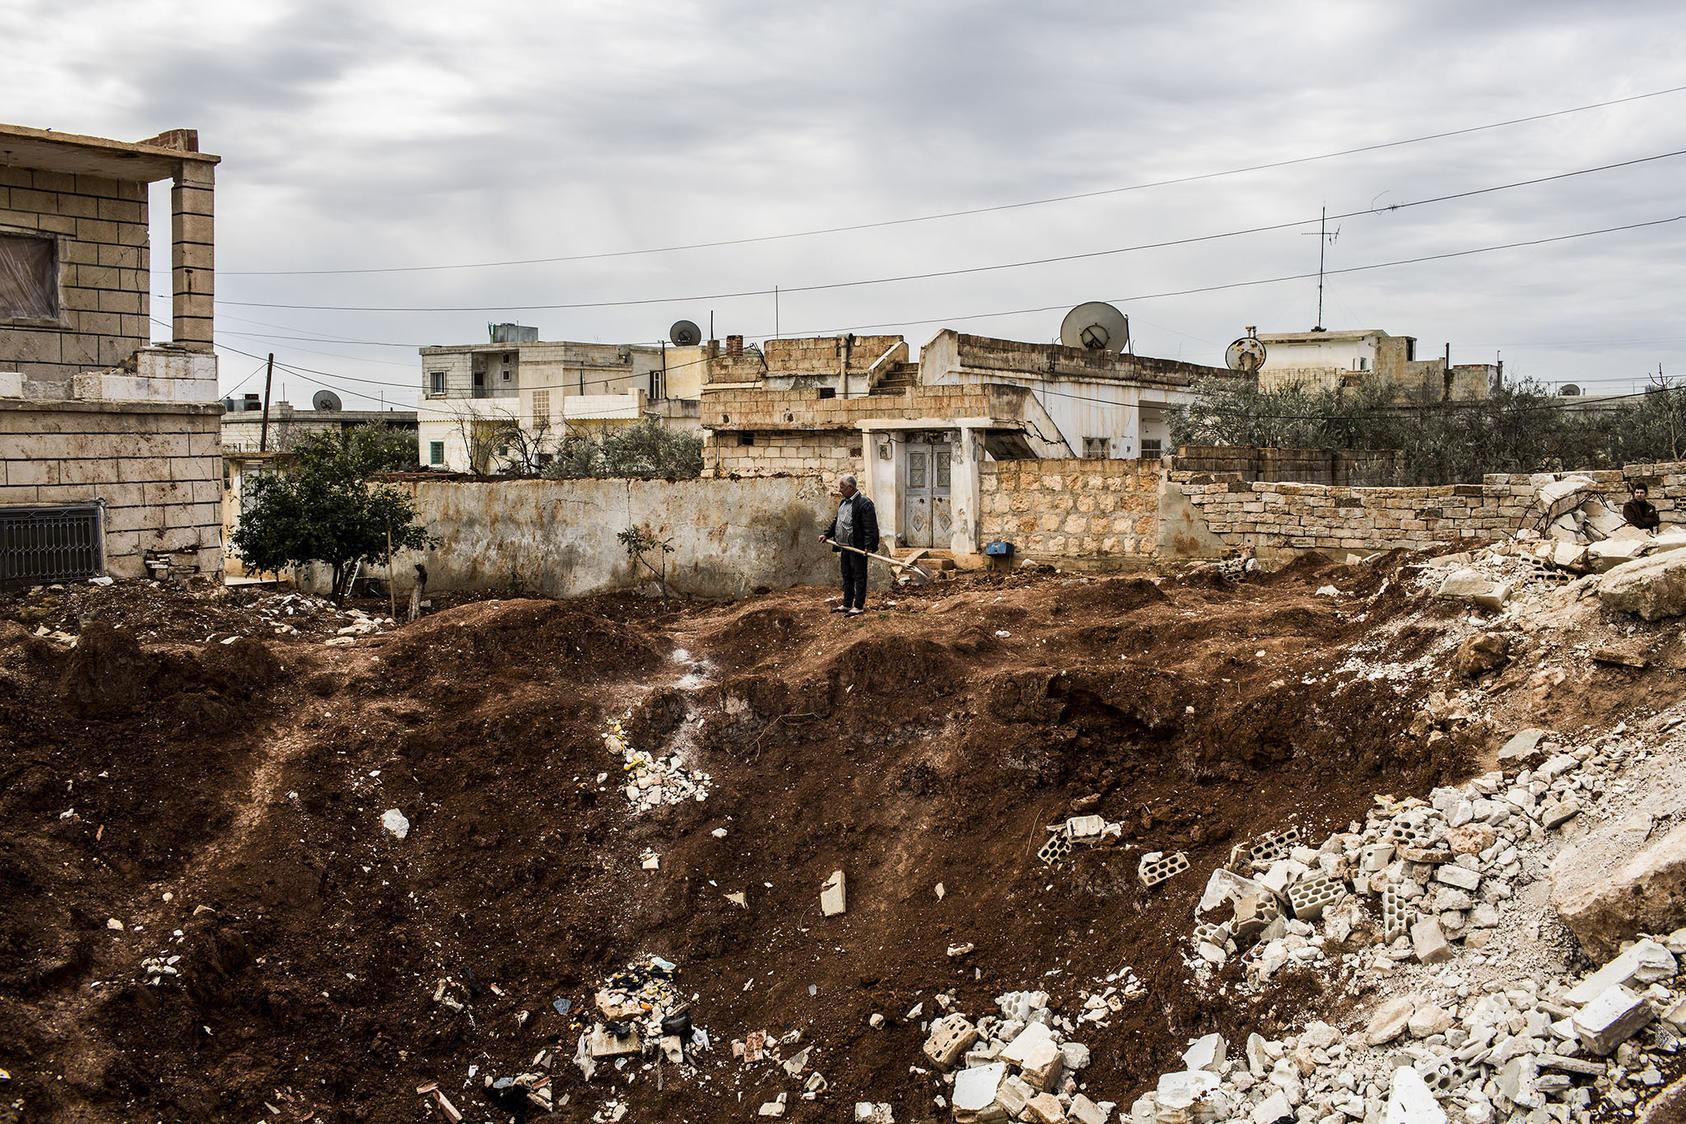 A resident of Syria's Idlib province surveys a crater from a missile strike in 2013. As the province faces a new offensive, its nascent women's movement has had to close some of its education centers for women and girls. (Bryan Denton/The New York Times)